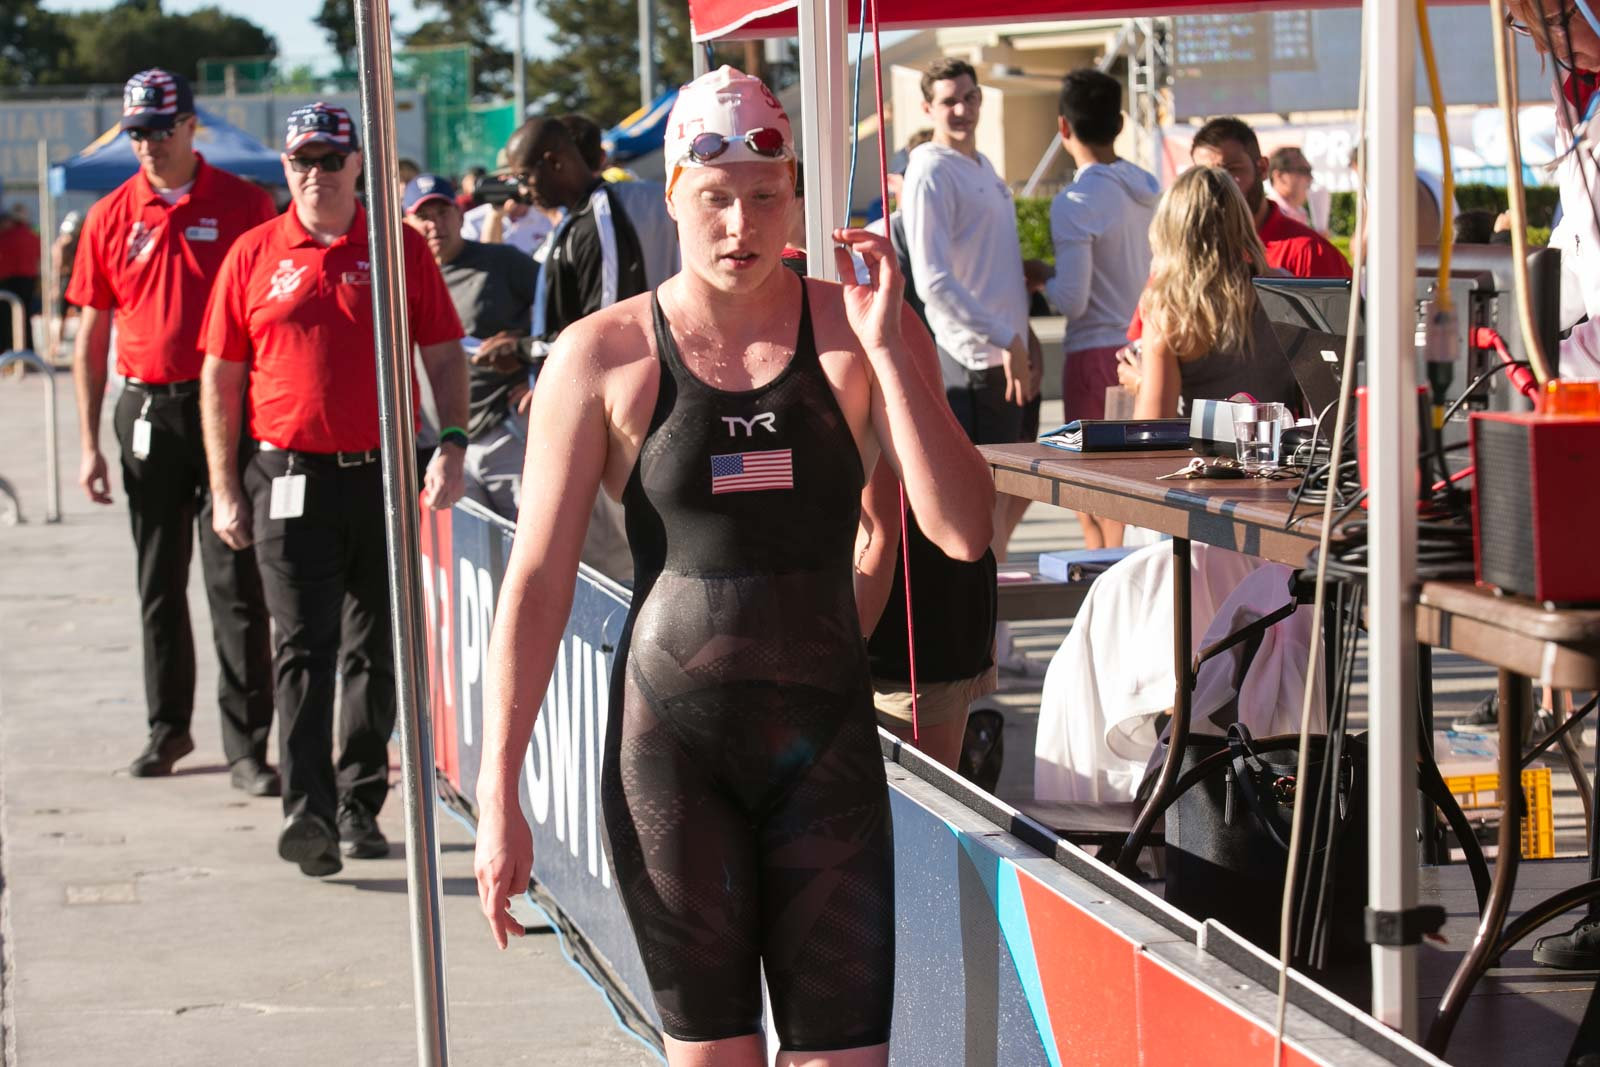 The 21-year old daughter of father Mark and mother Ginny Lilly King in 2018 photo. Lilly King earned a  million dollar salary - leaving the net worth at 0,3 million in 2018